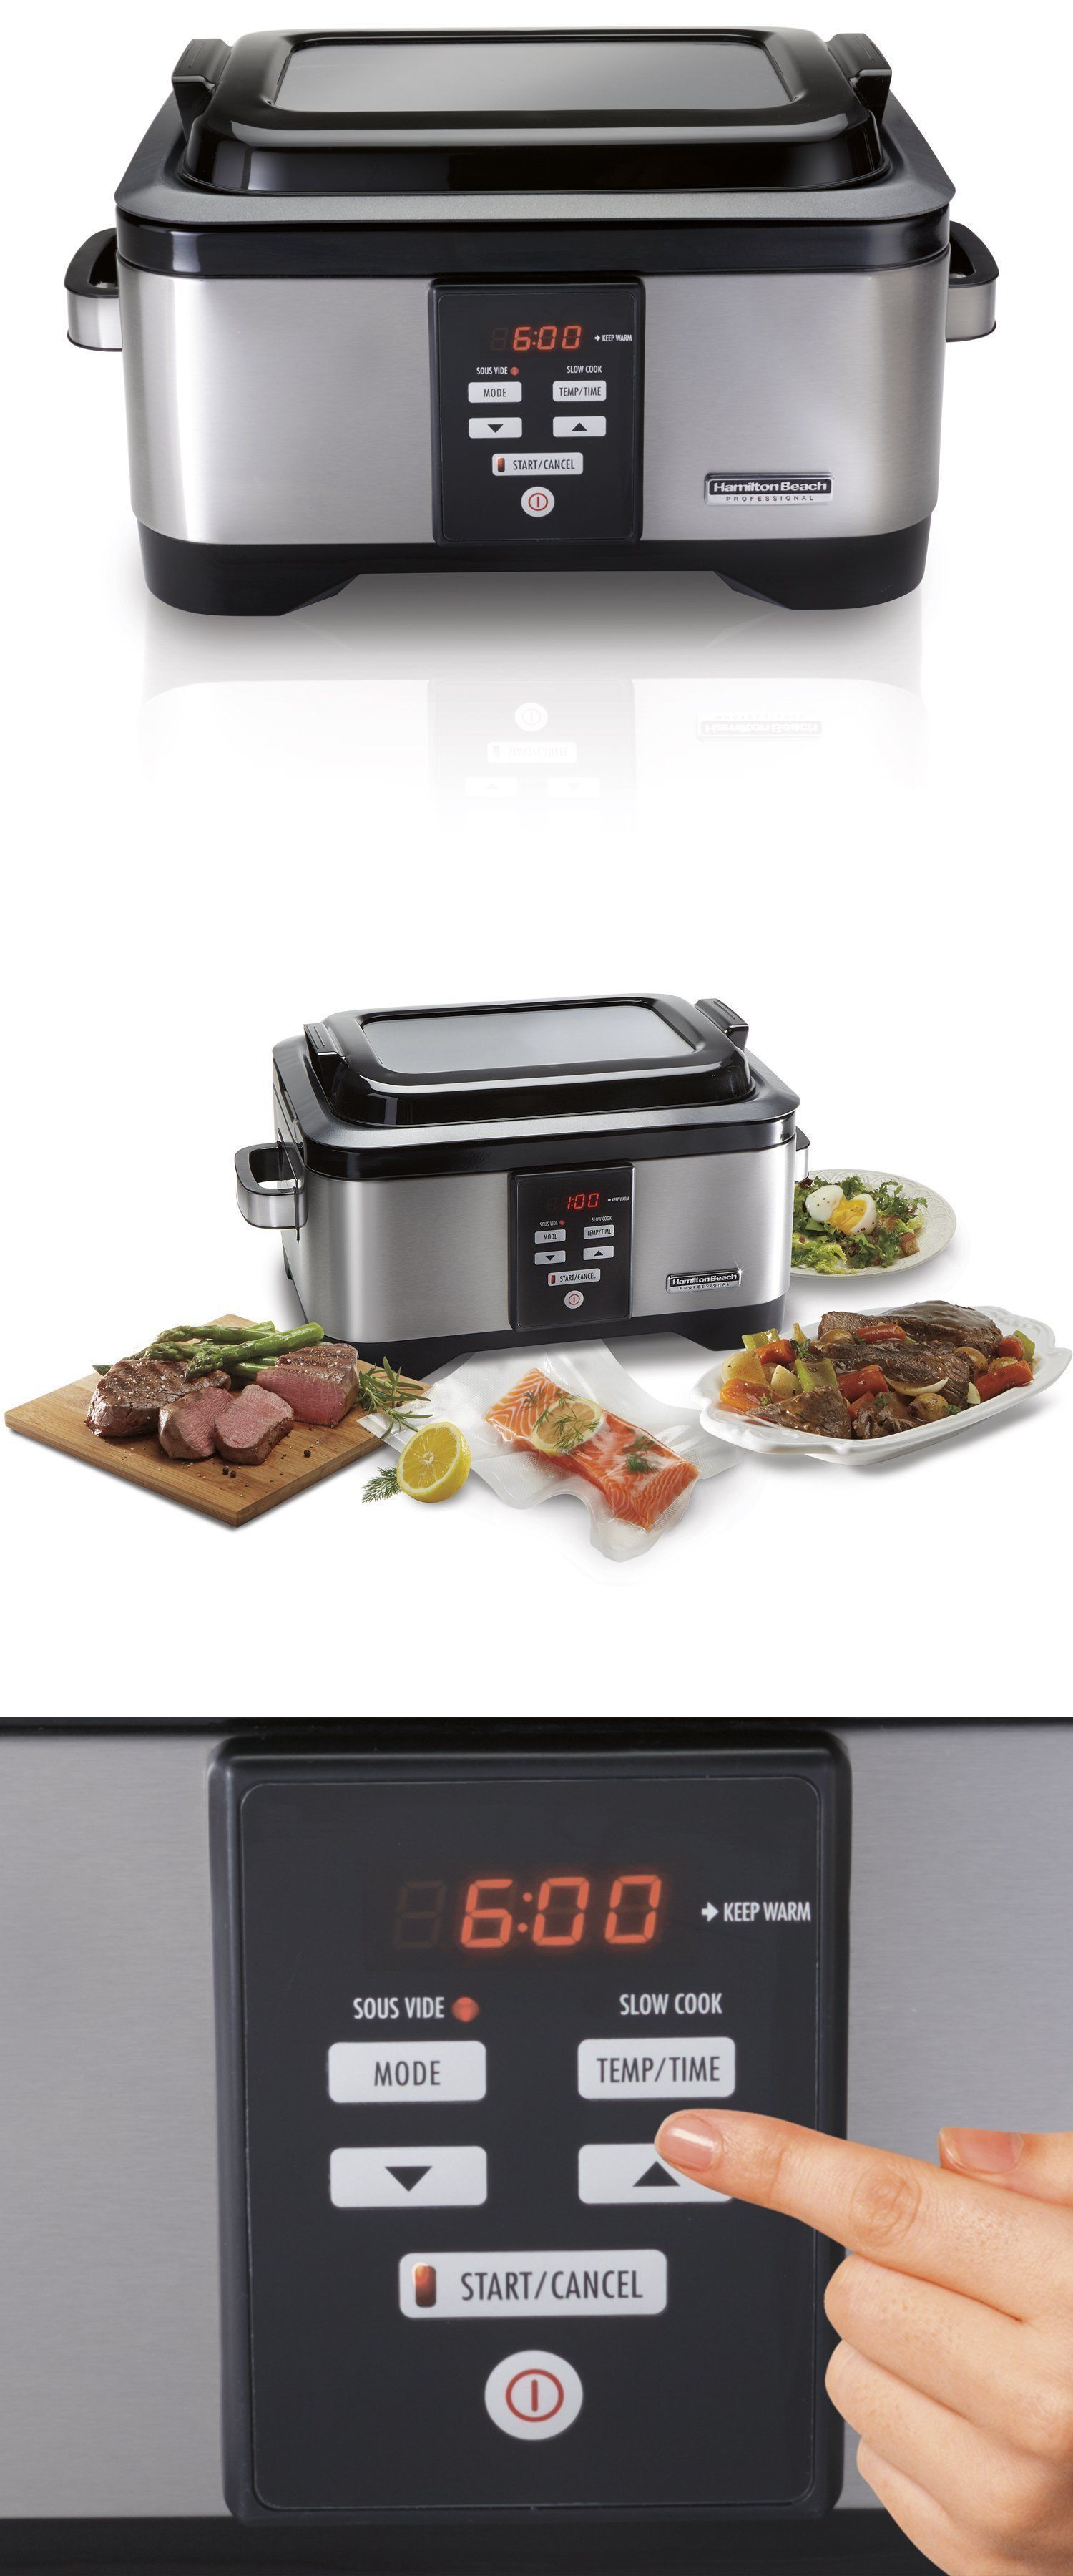 Uncategorized Ebay Kitchen Appliances small kitchen appliances hamilton beach professional sous vide 6 qt slow cooker stainless steel 33970